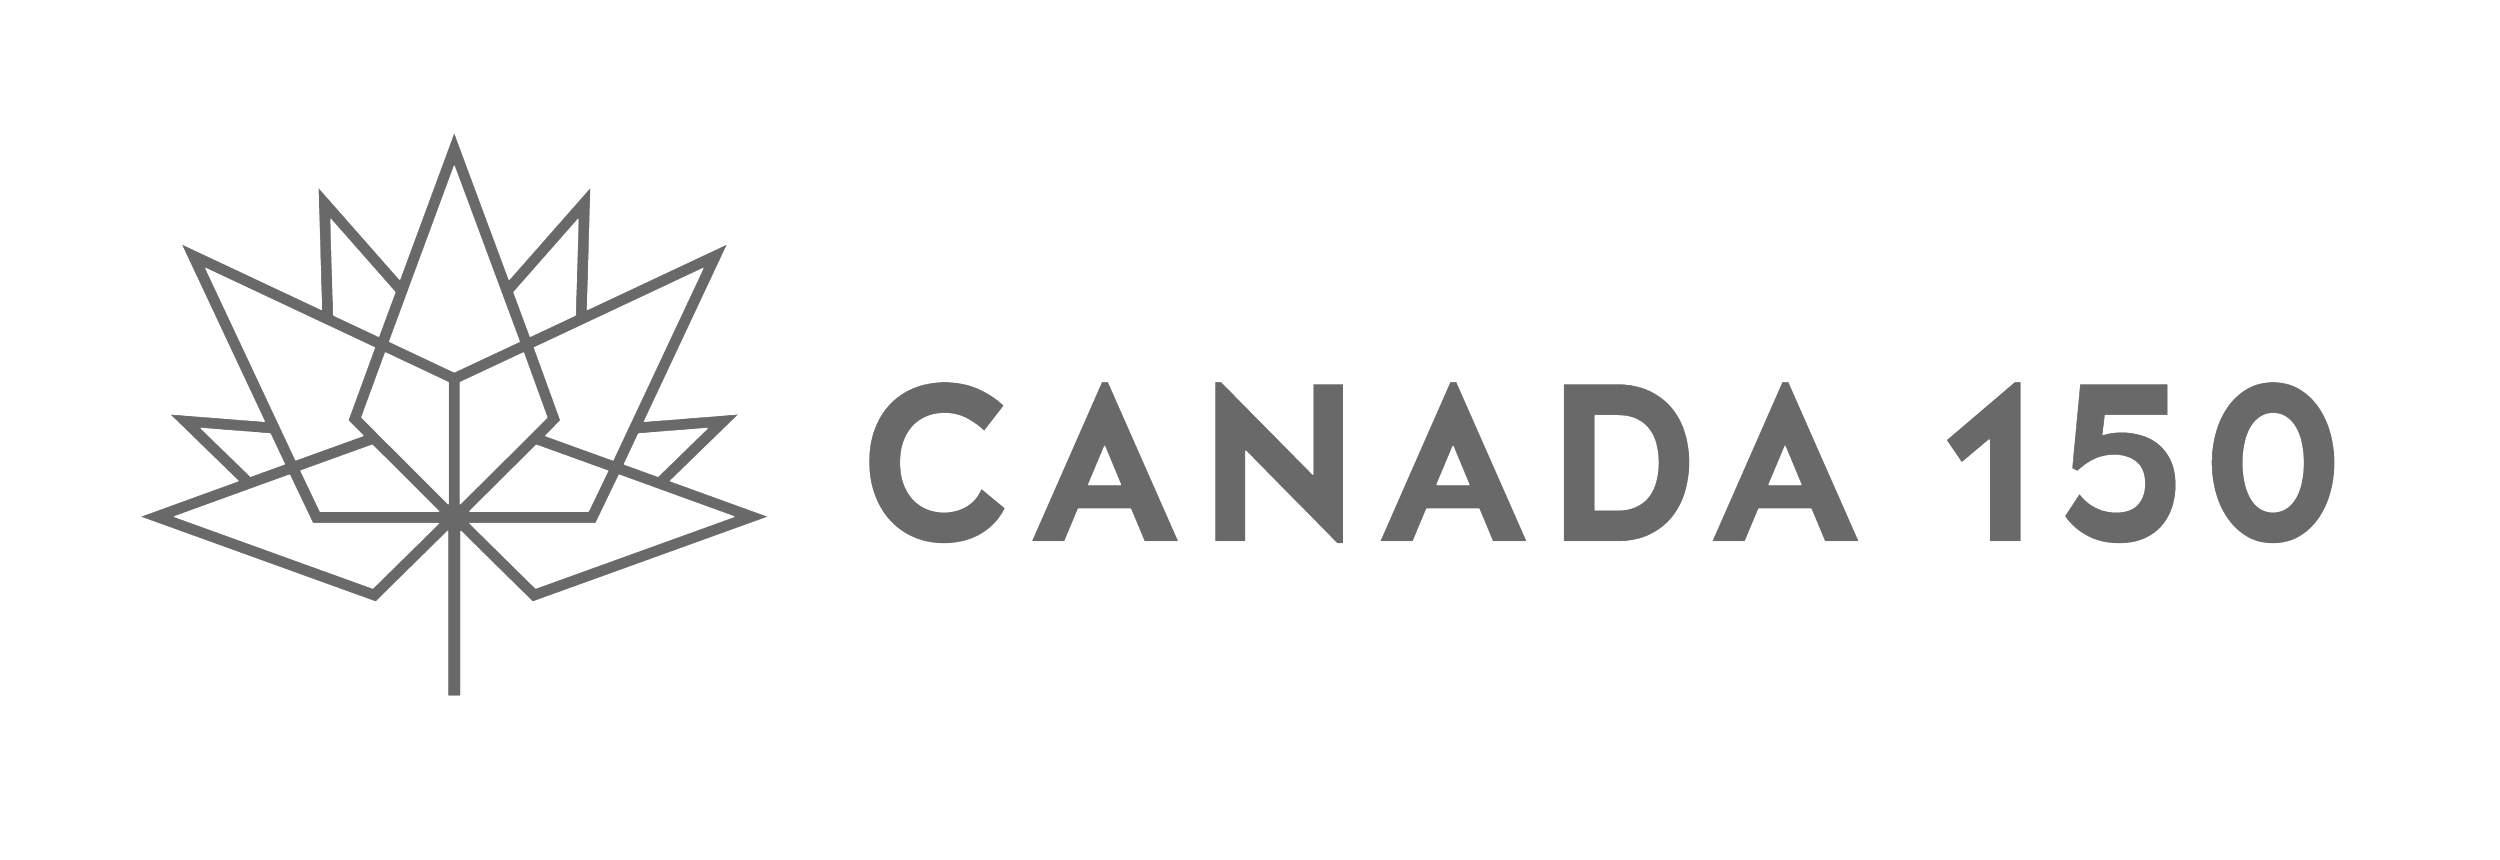 canada150-official-logo.png